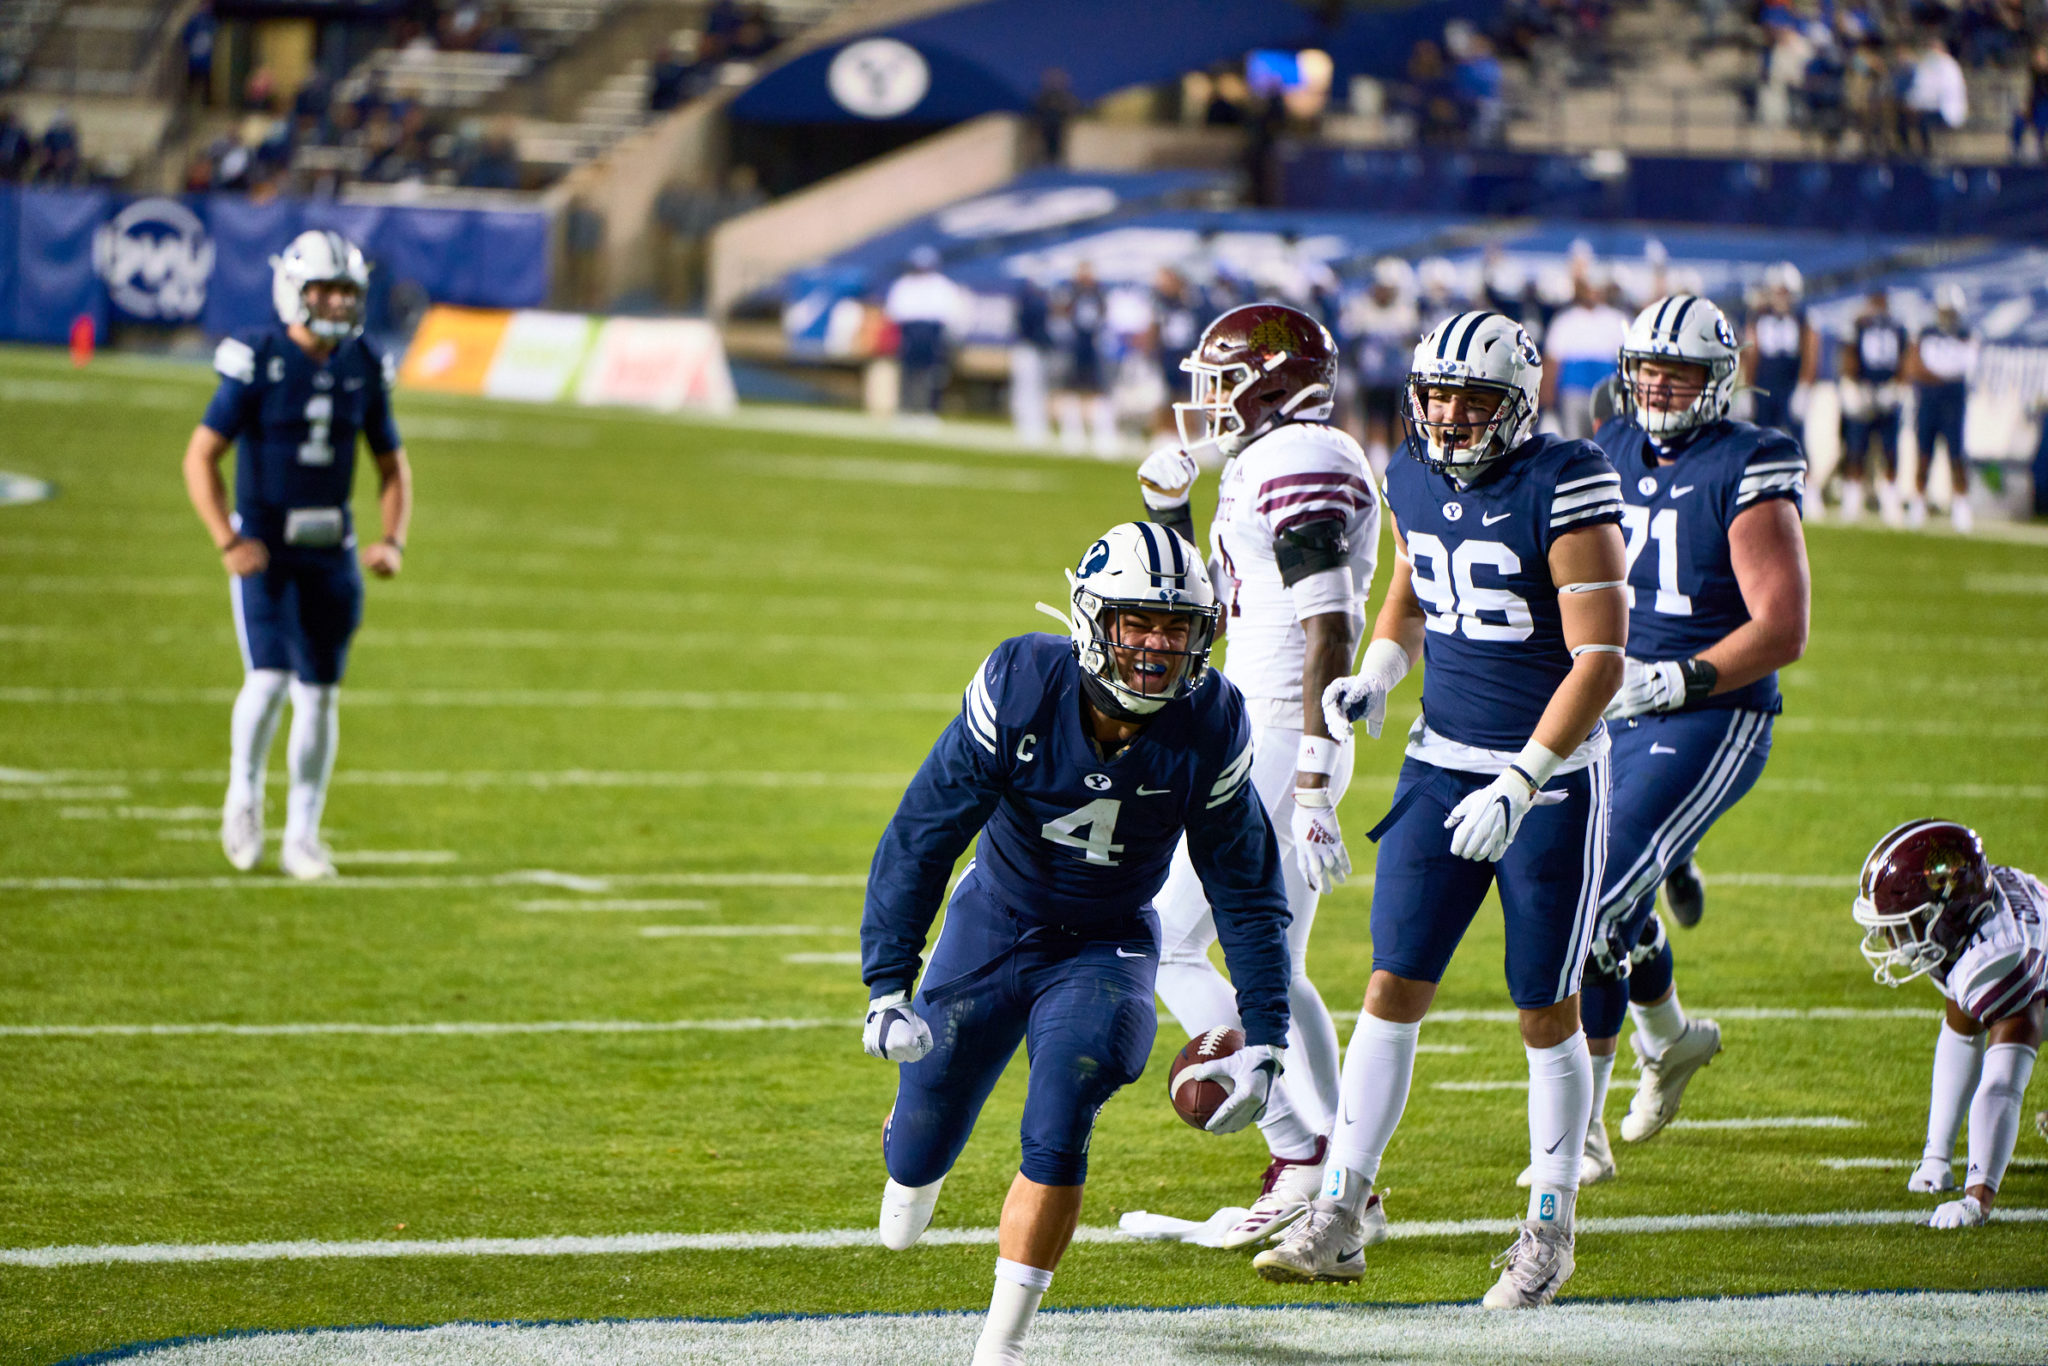 BYU Football gives fans a show with 52-14 win over Texas State